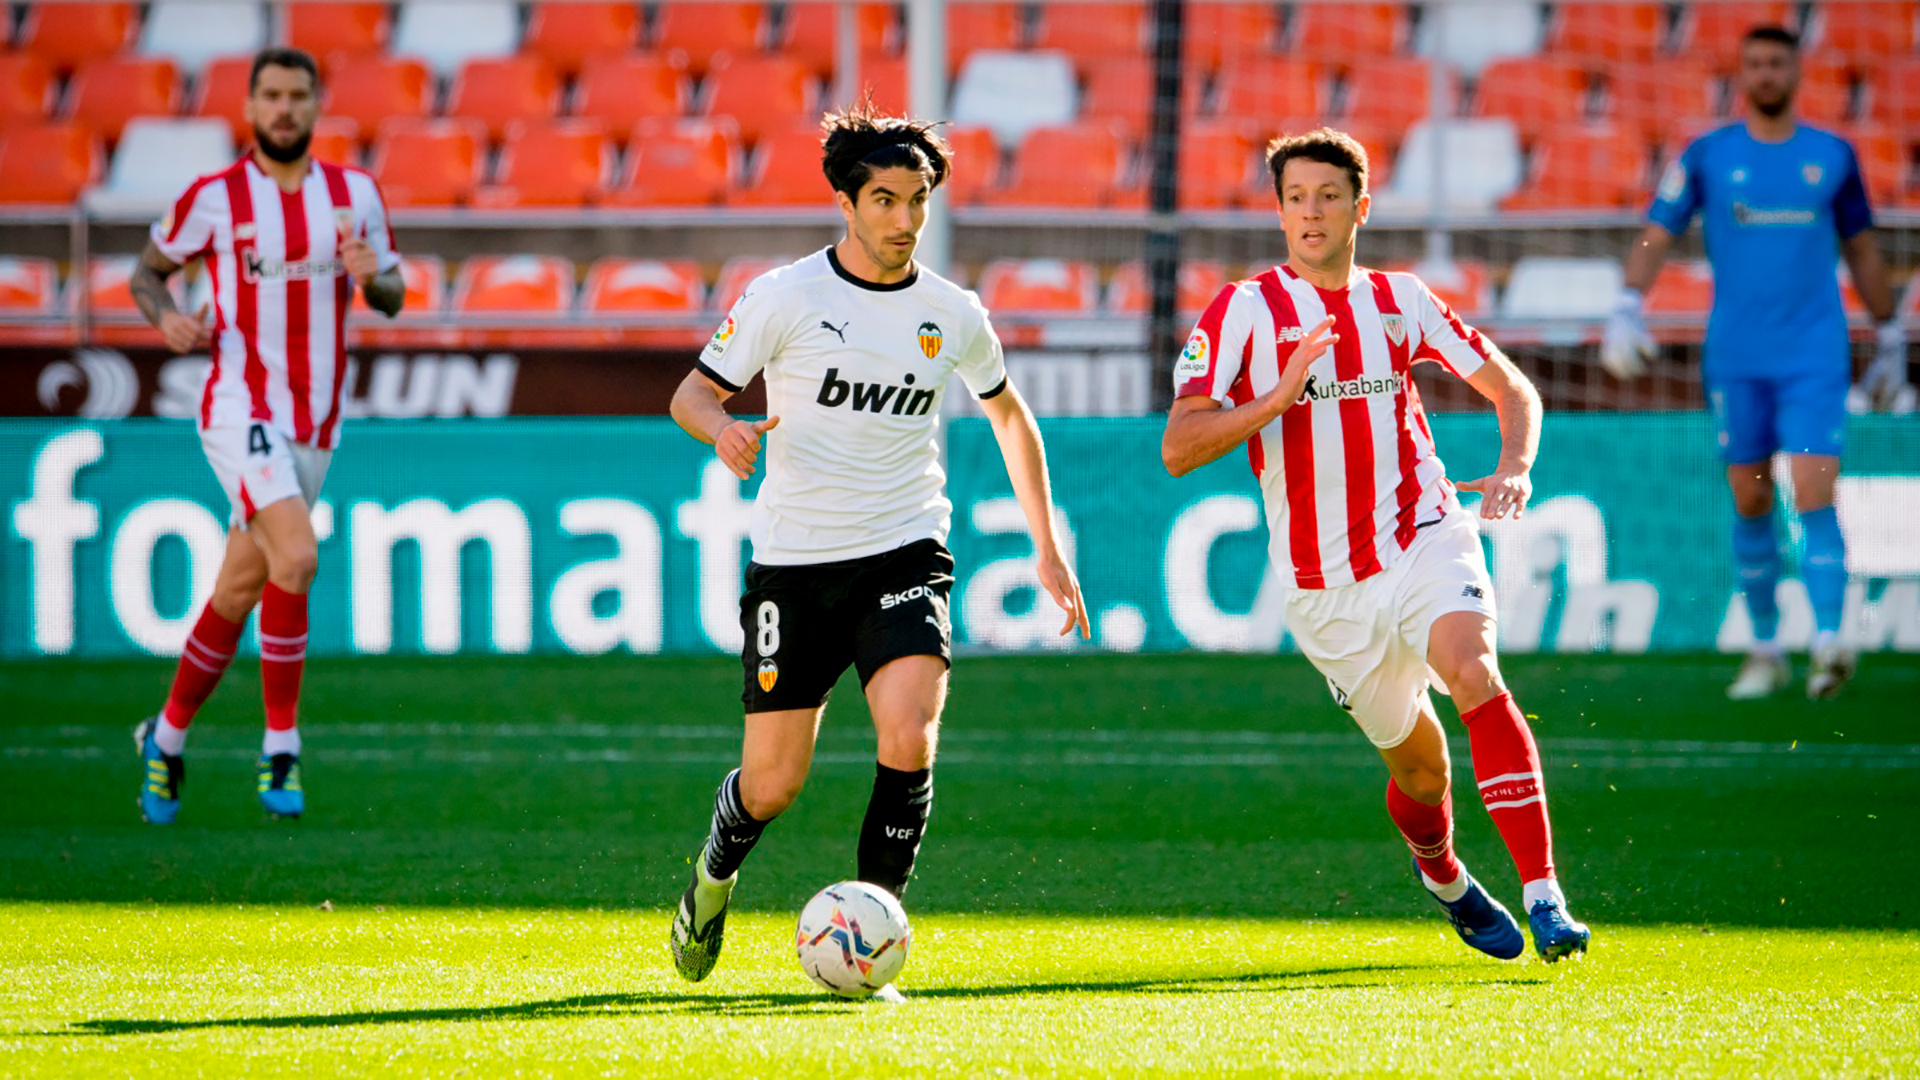 Descanso: Valencia CF 1-0 Athletic Club